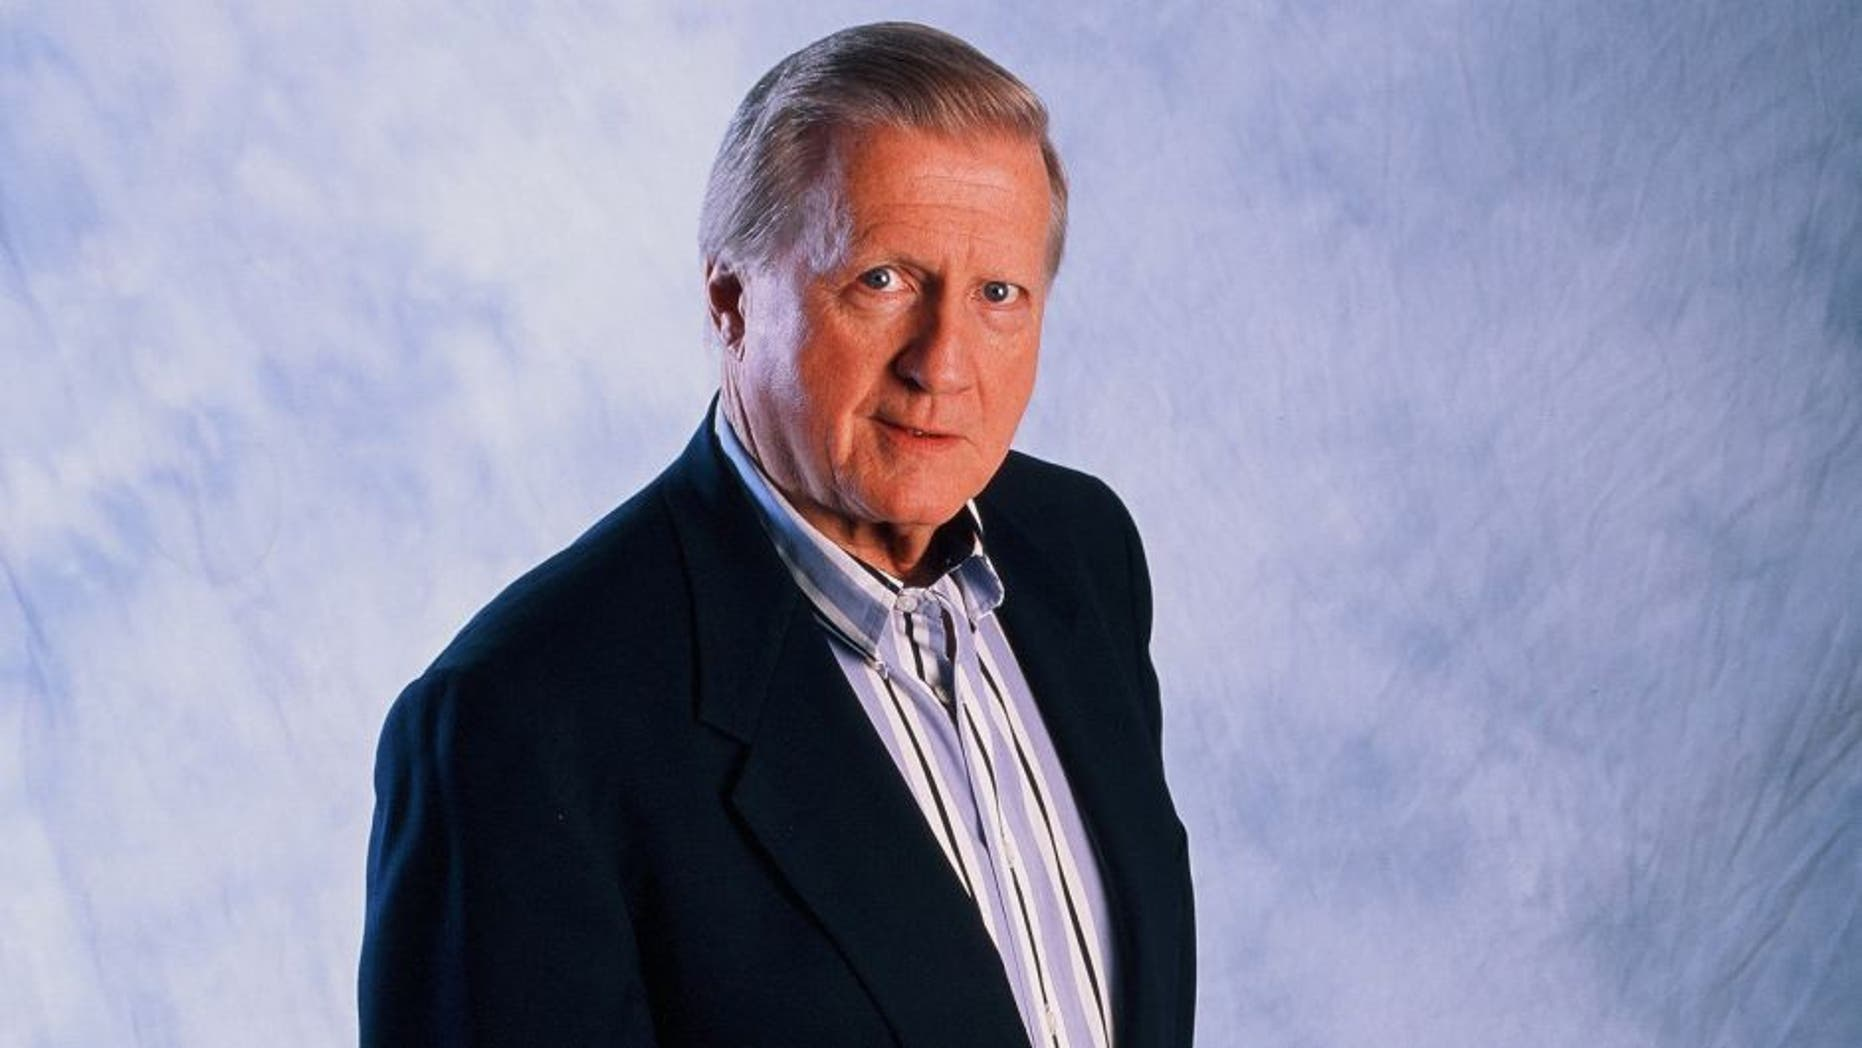 USA - JULY 26: George Steinbrenner of the New York Yankees poses for a photo on July 26, 1998. (Photo by Sporting News via Getty Images)